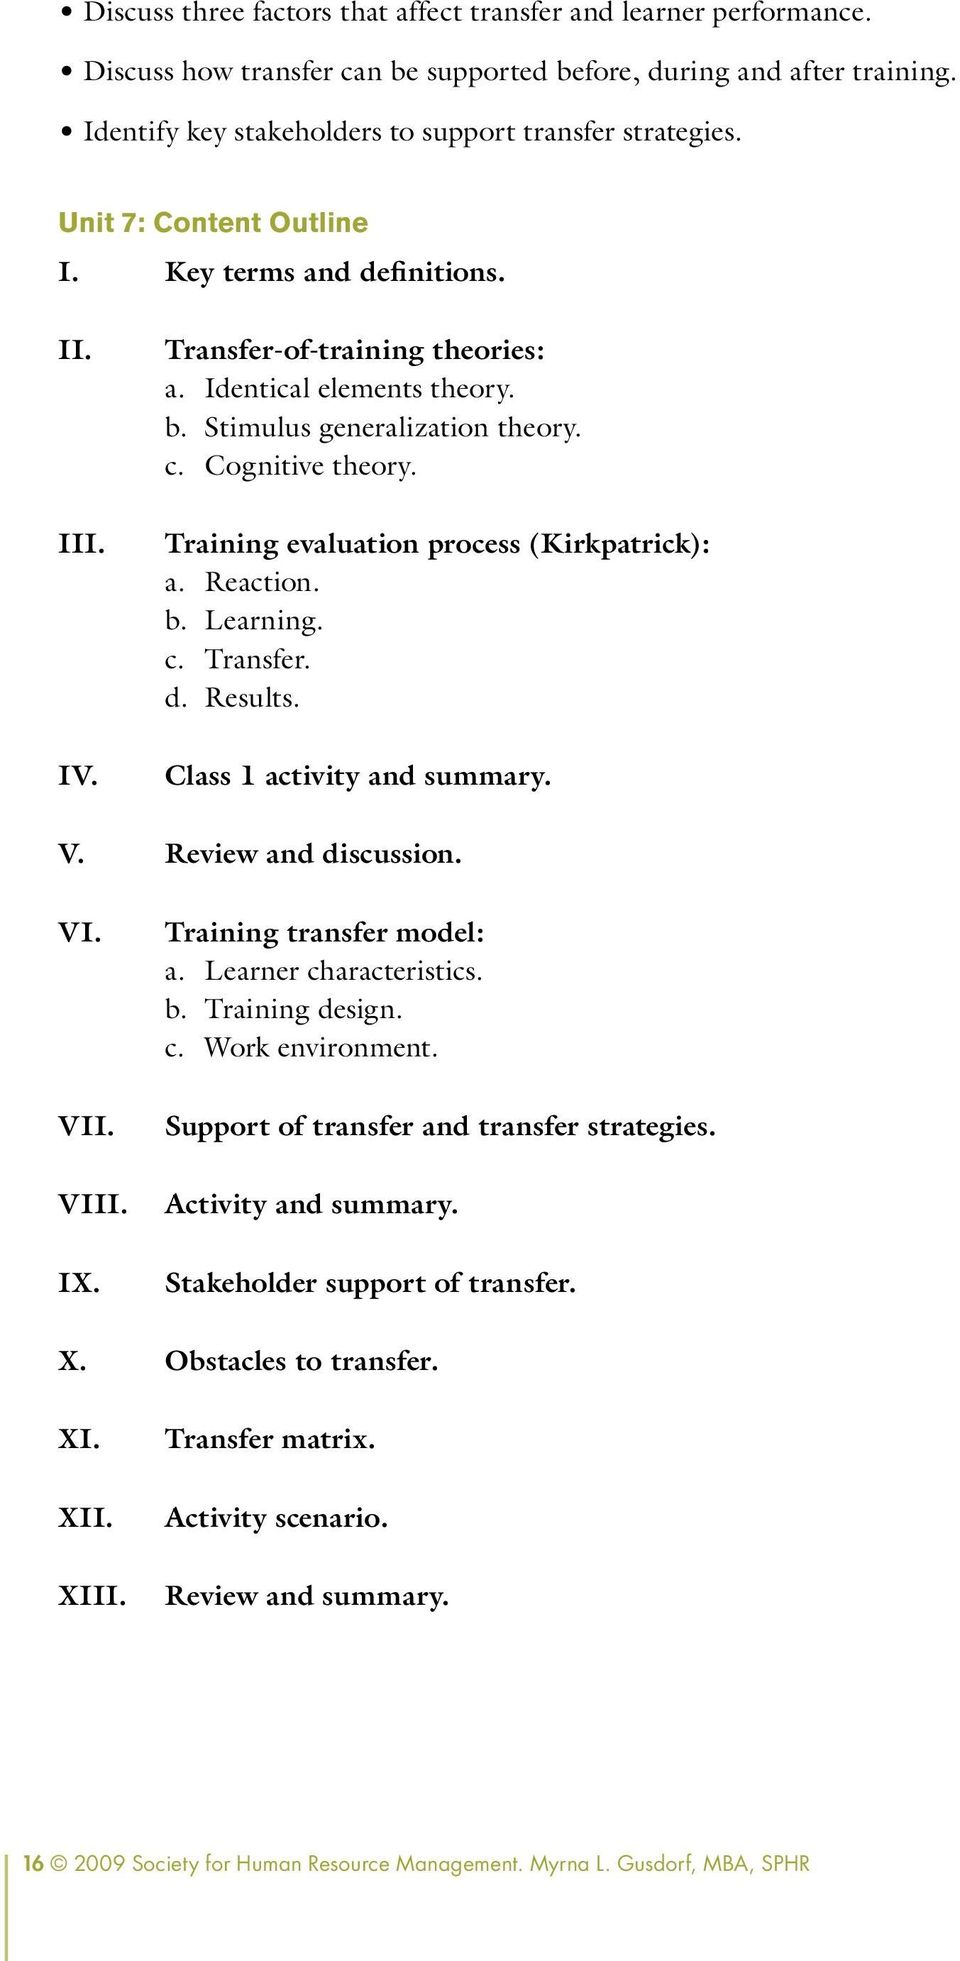 Training evaluation process (Kirkpatrick): a. Reaction. b. Learning. c. Transfer. d. Results. Class 1 activity and summary. V. Review and discussion. VI. VII. VIII. IX. Training transfer model: a.